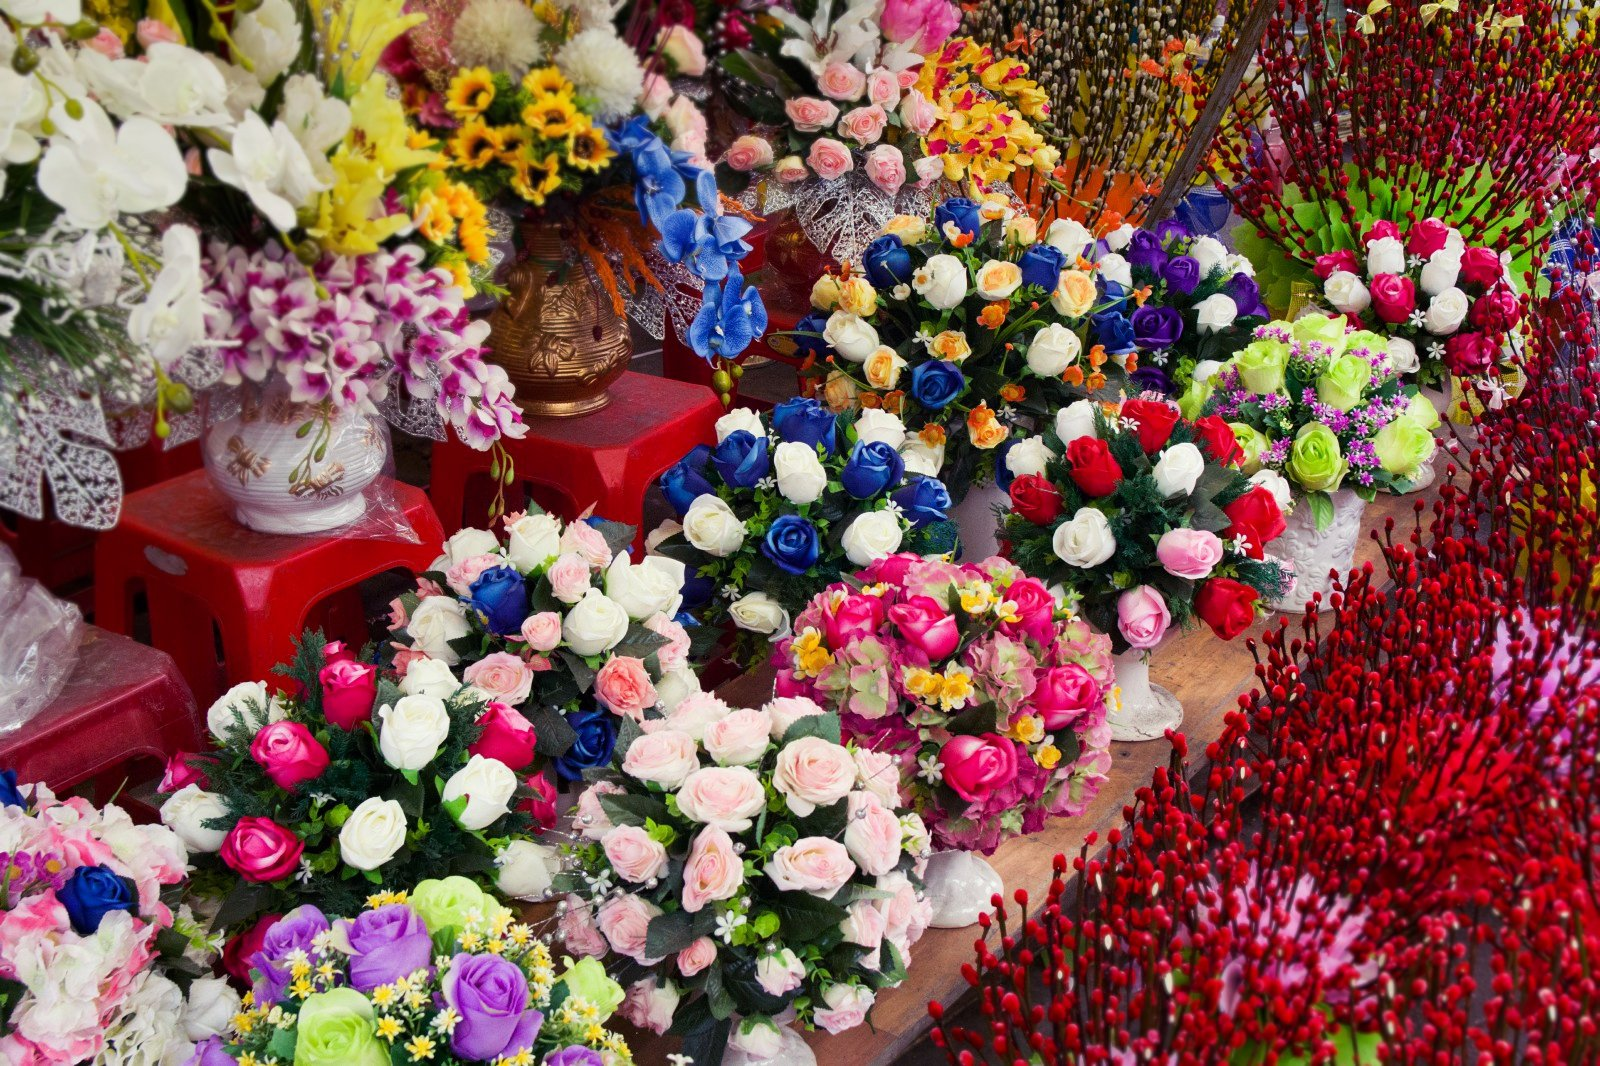 The Complete Guide To Ho Thi Ky Flower Market In Saigon The